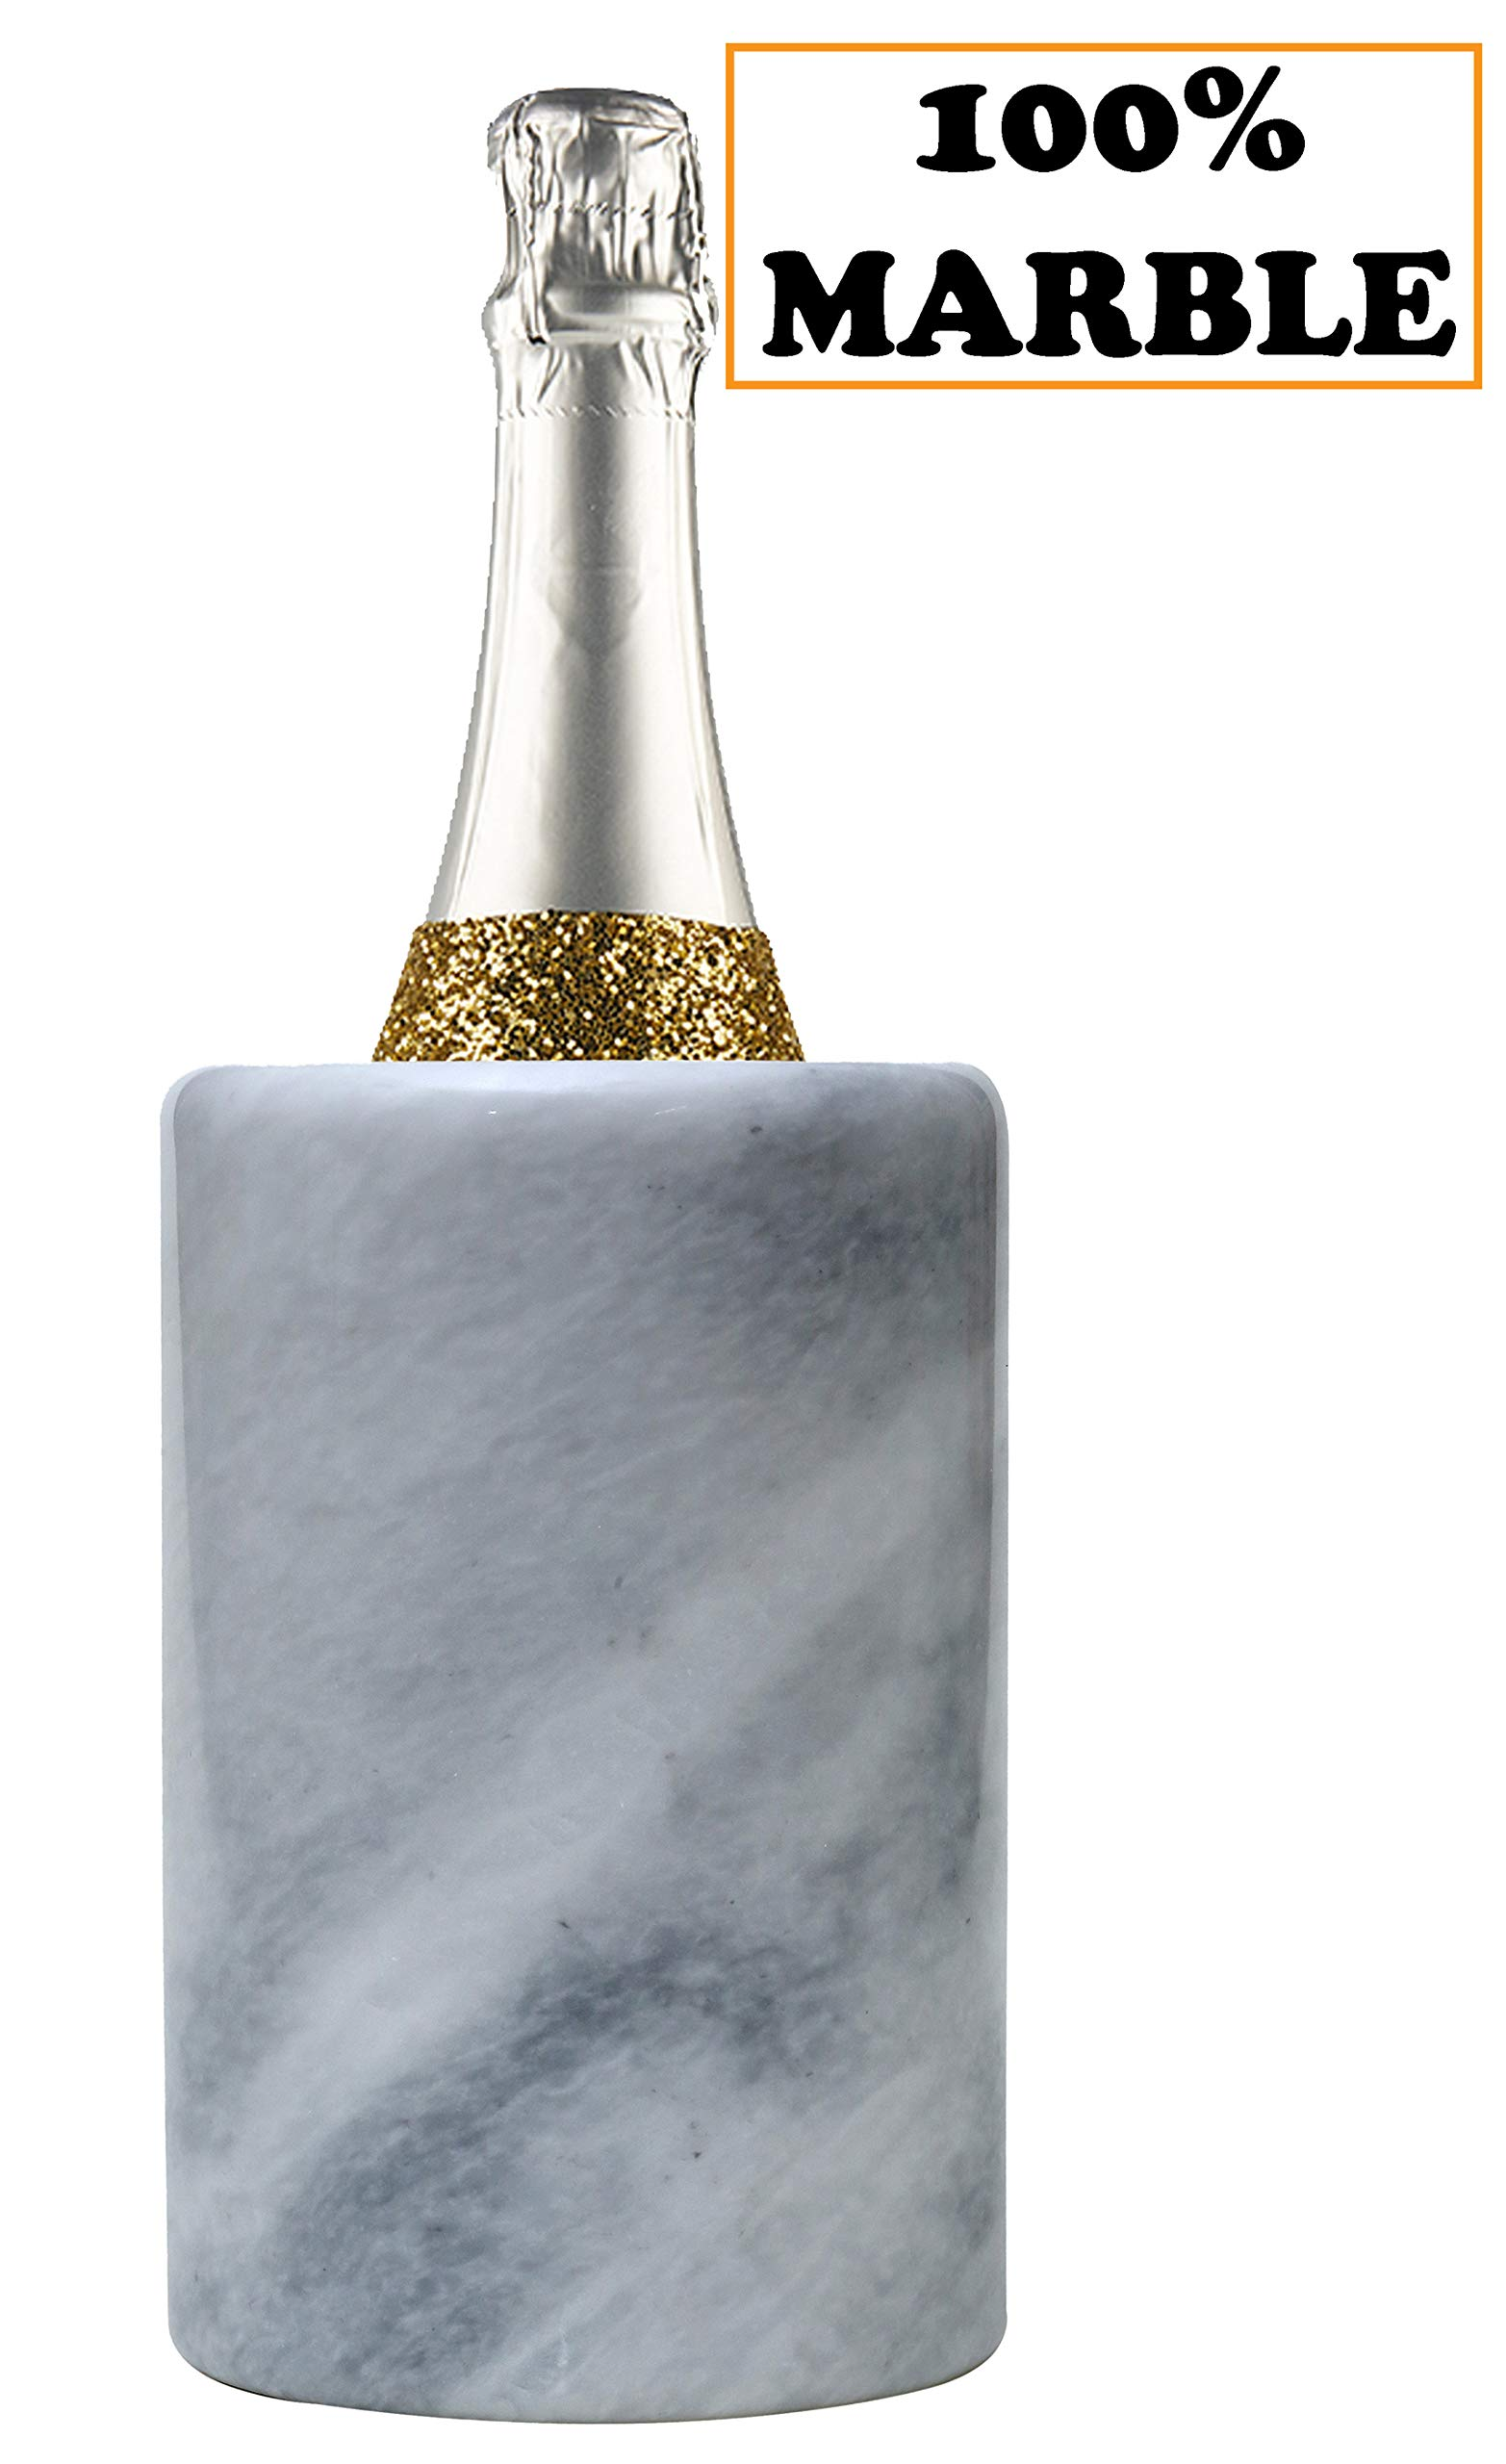 Wine Chiller White Table Top Handmade Marble Wine Chillers for Champagne - Tall 5x5x6.5 Inch'' Beverage Freeze Cooler Holder - Use as Utensils, Stationery & Centerpiece Bar Decor (WZ-03) by RADICALn (Image #1)